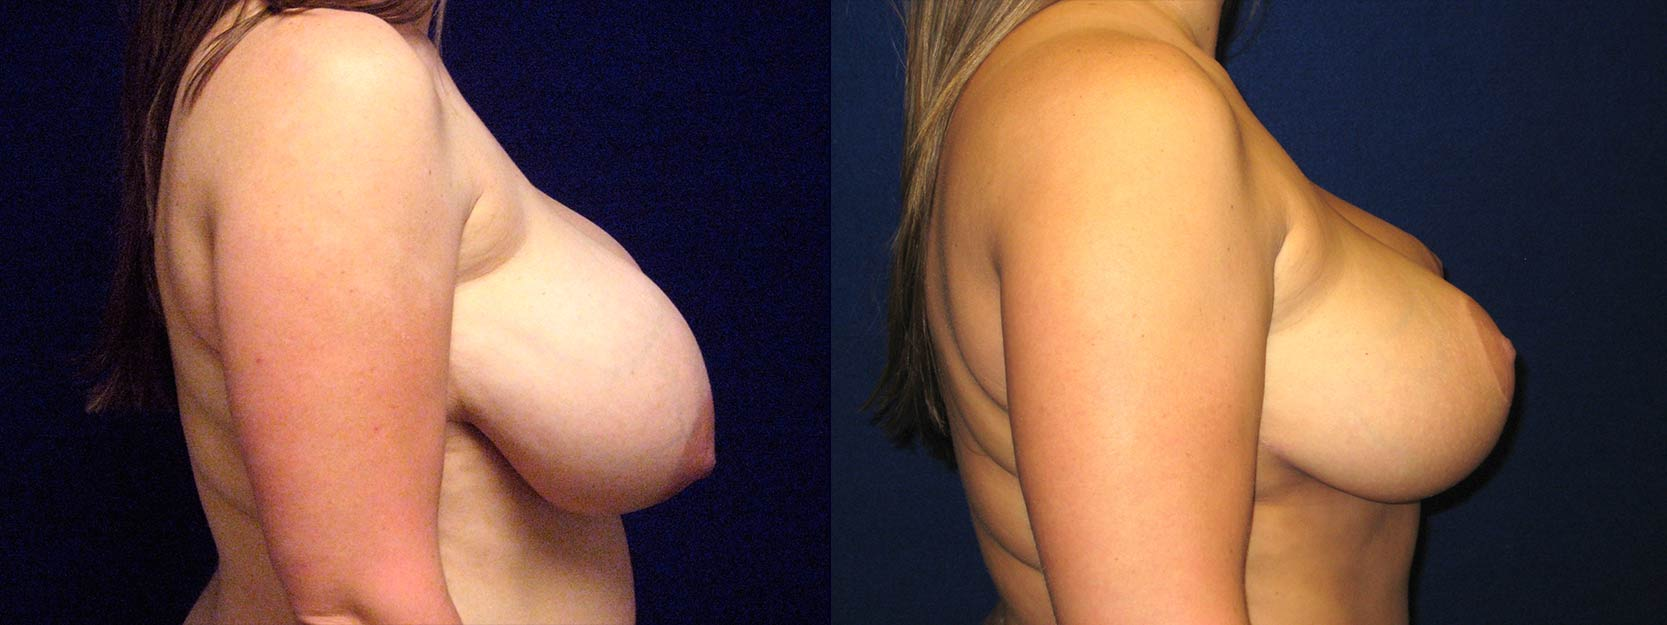 Right Profile View - Breast Reduction